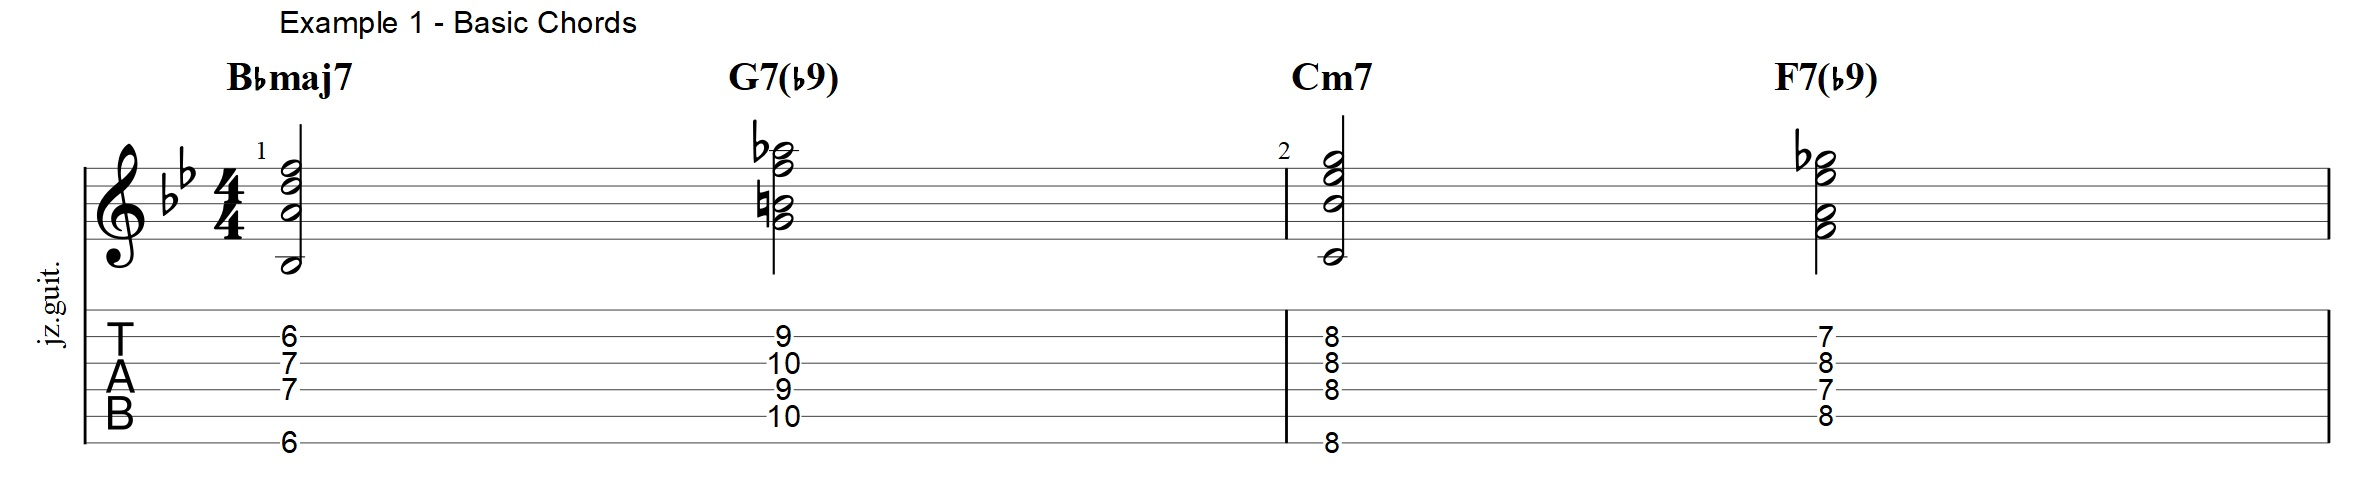 Jazz Archives Jens Larsen The Chord Symble A7 Above A Bar It Means We Have To Play Is Important Chords And Get Used How They Sound For Any Progression You Want Solo On Also Be Able